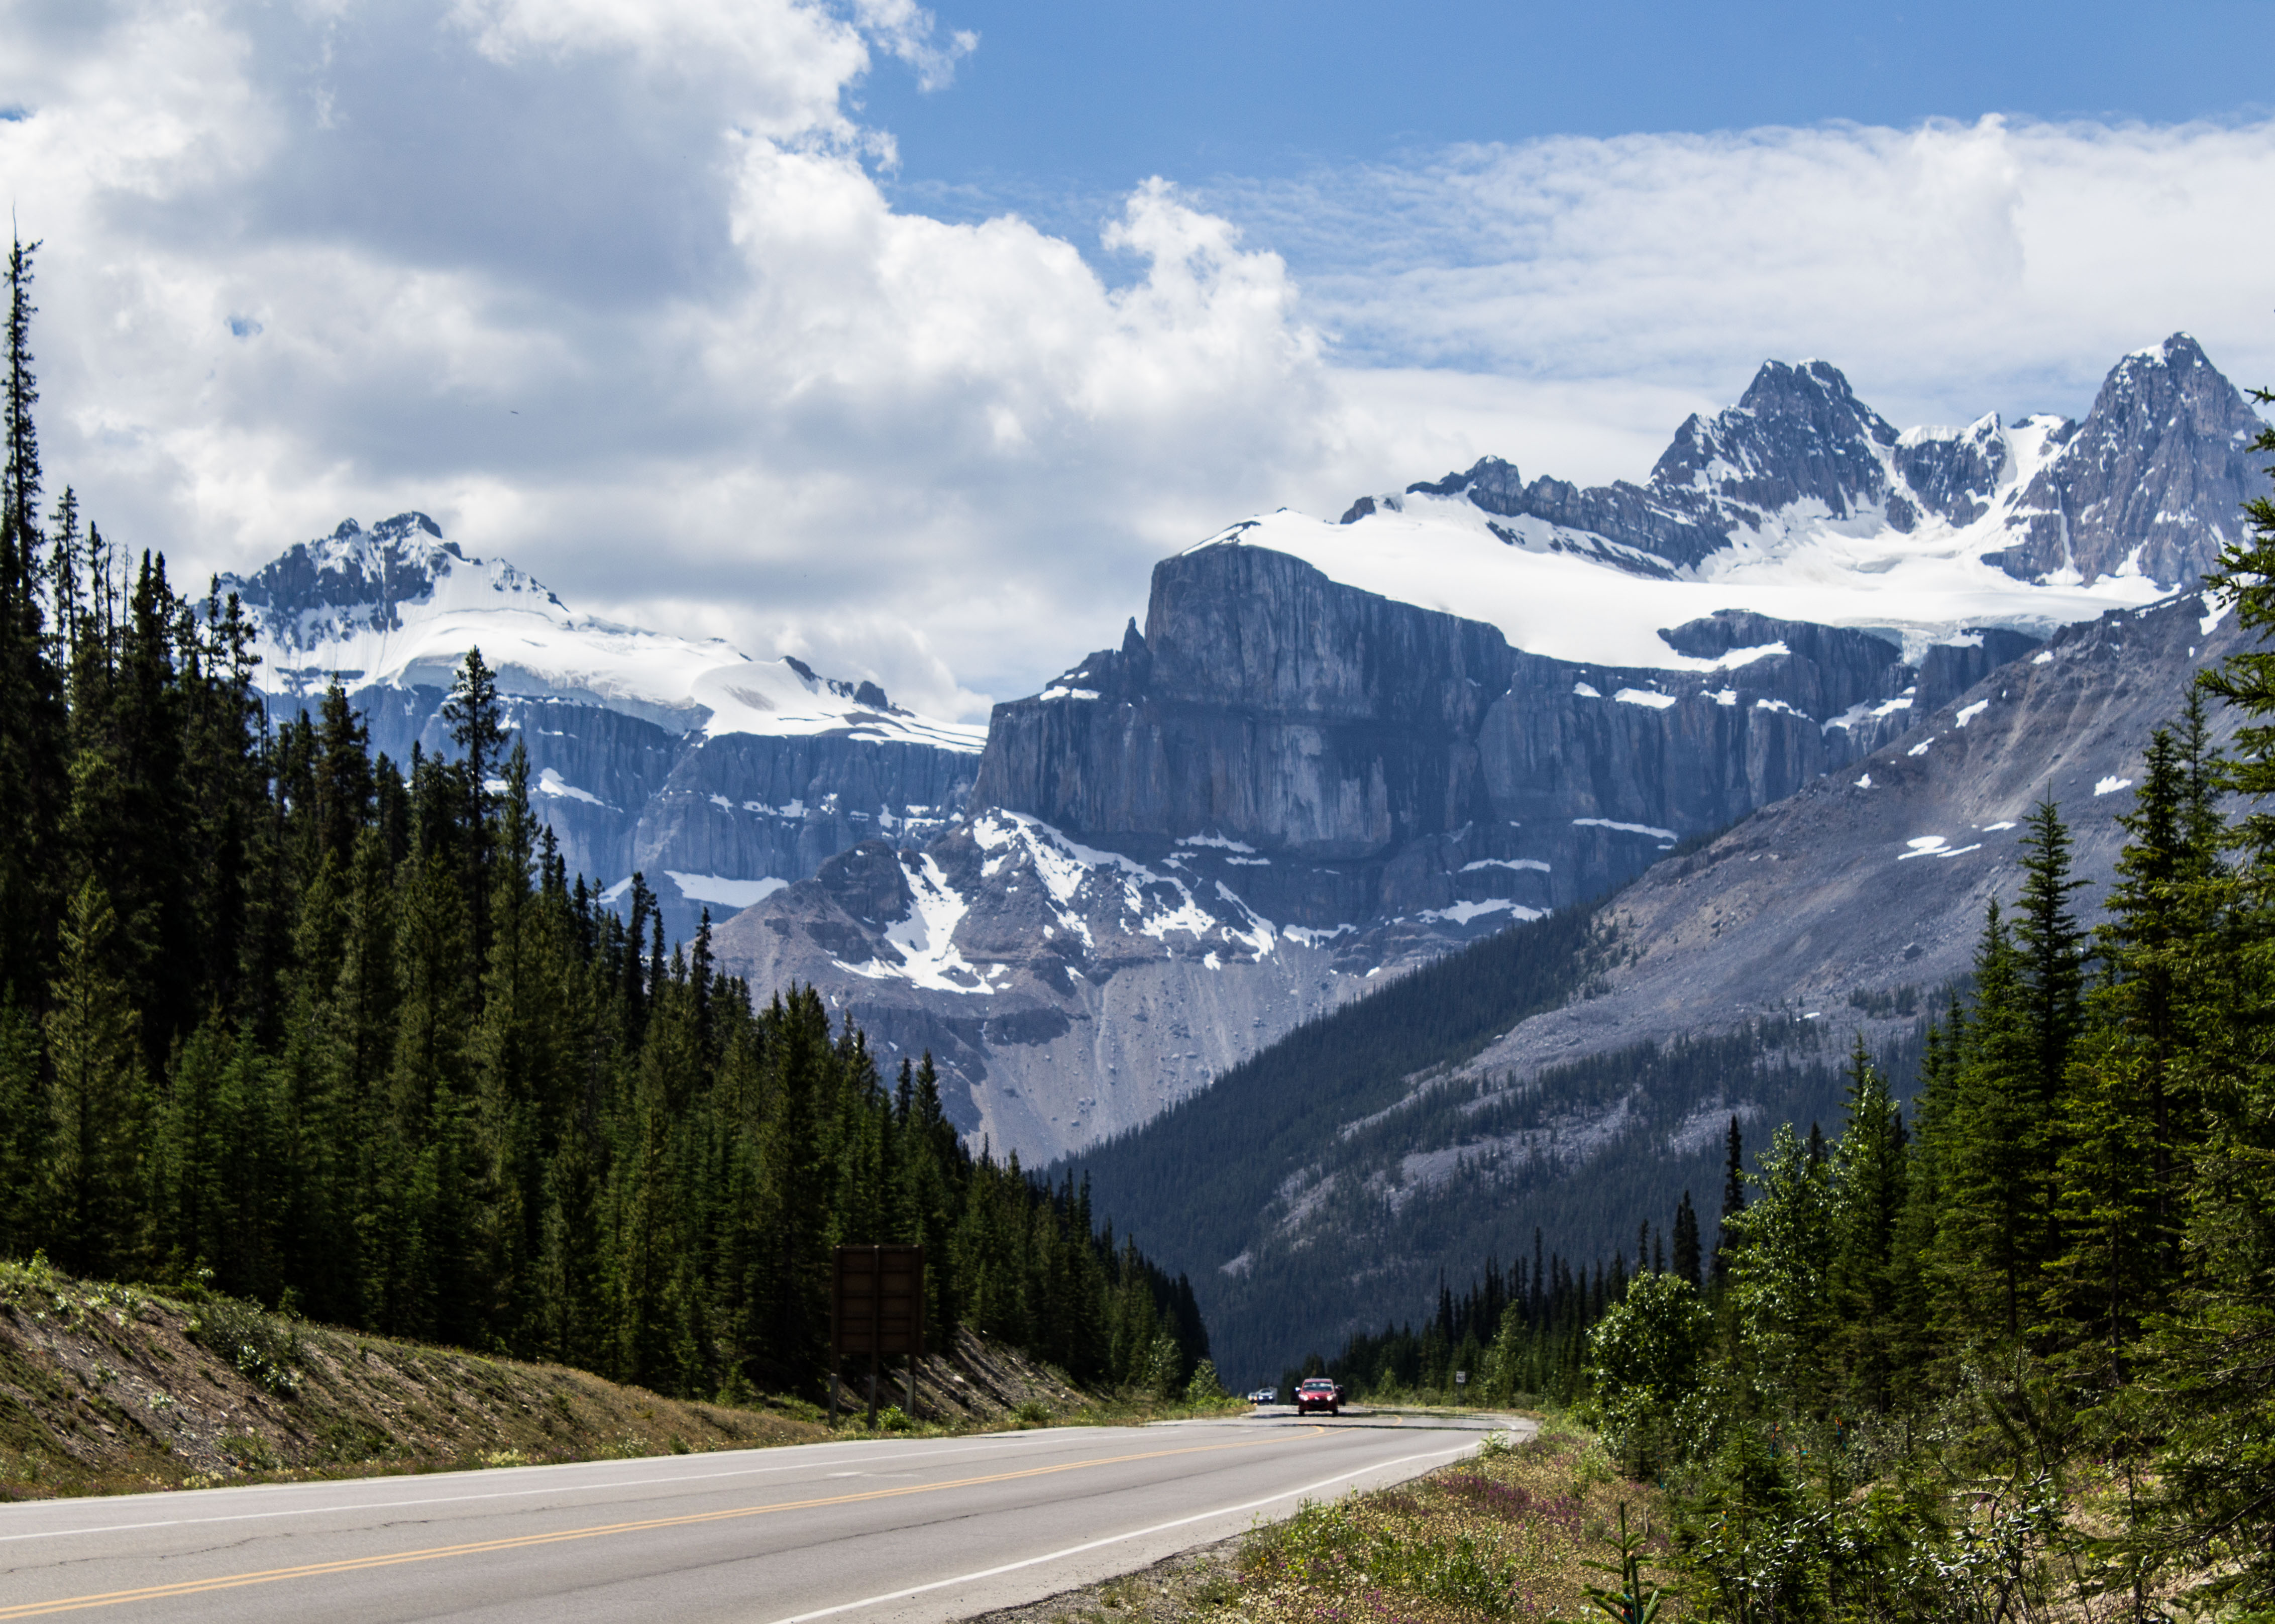 The Canadian Rocky Mountain Icefields have over a hundred glaciers. Many are visible from the Icefields Parkway. Dawn Page / CoastsideSlacking